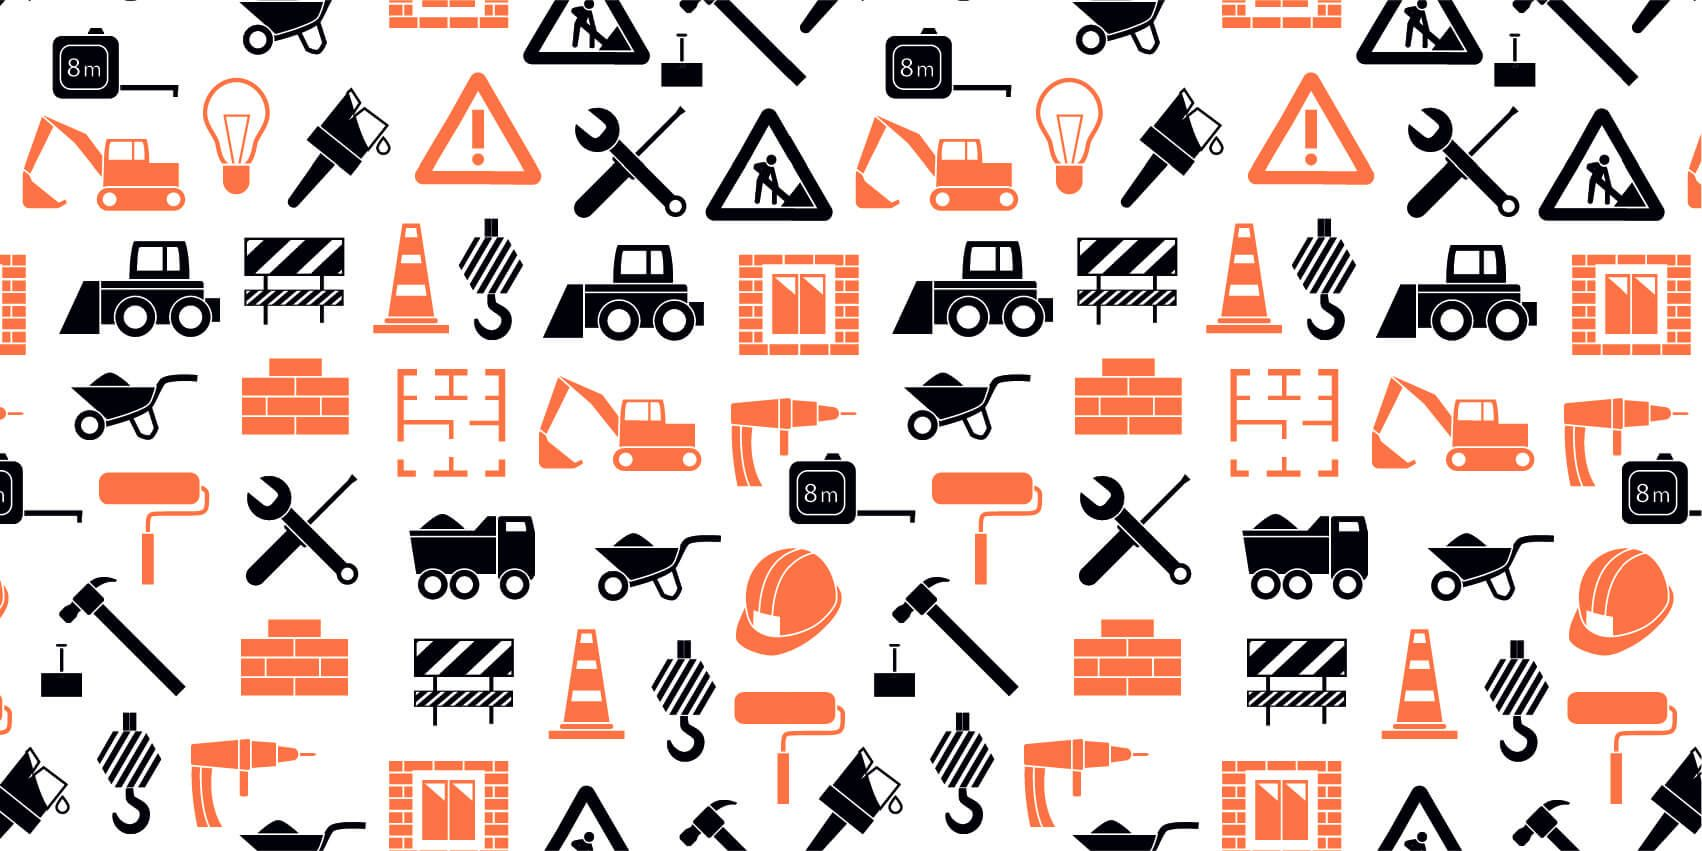 Other - Construction vehicles and building materials - Children's room